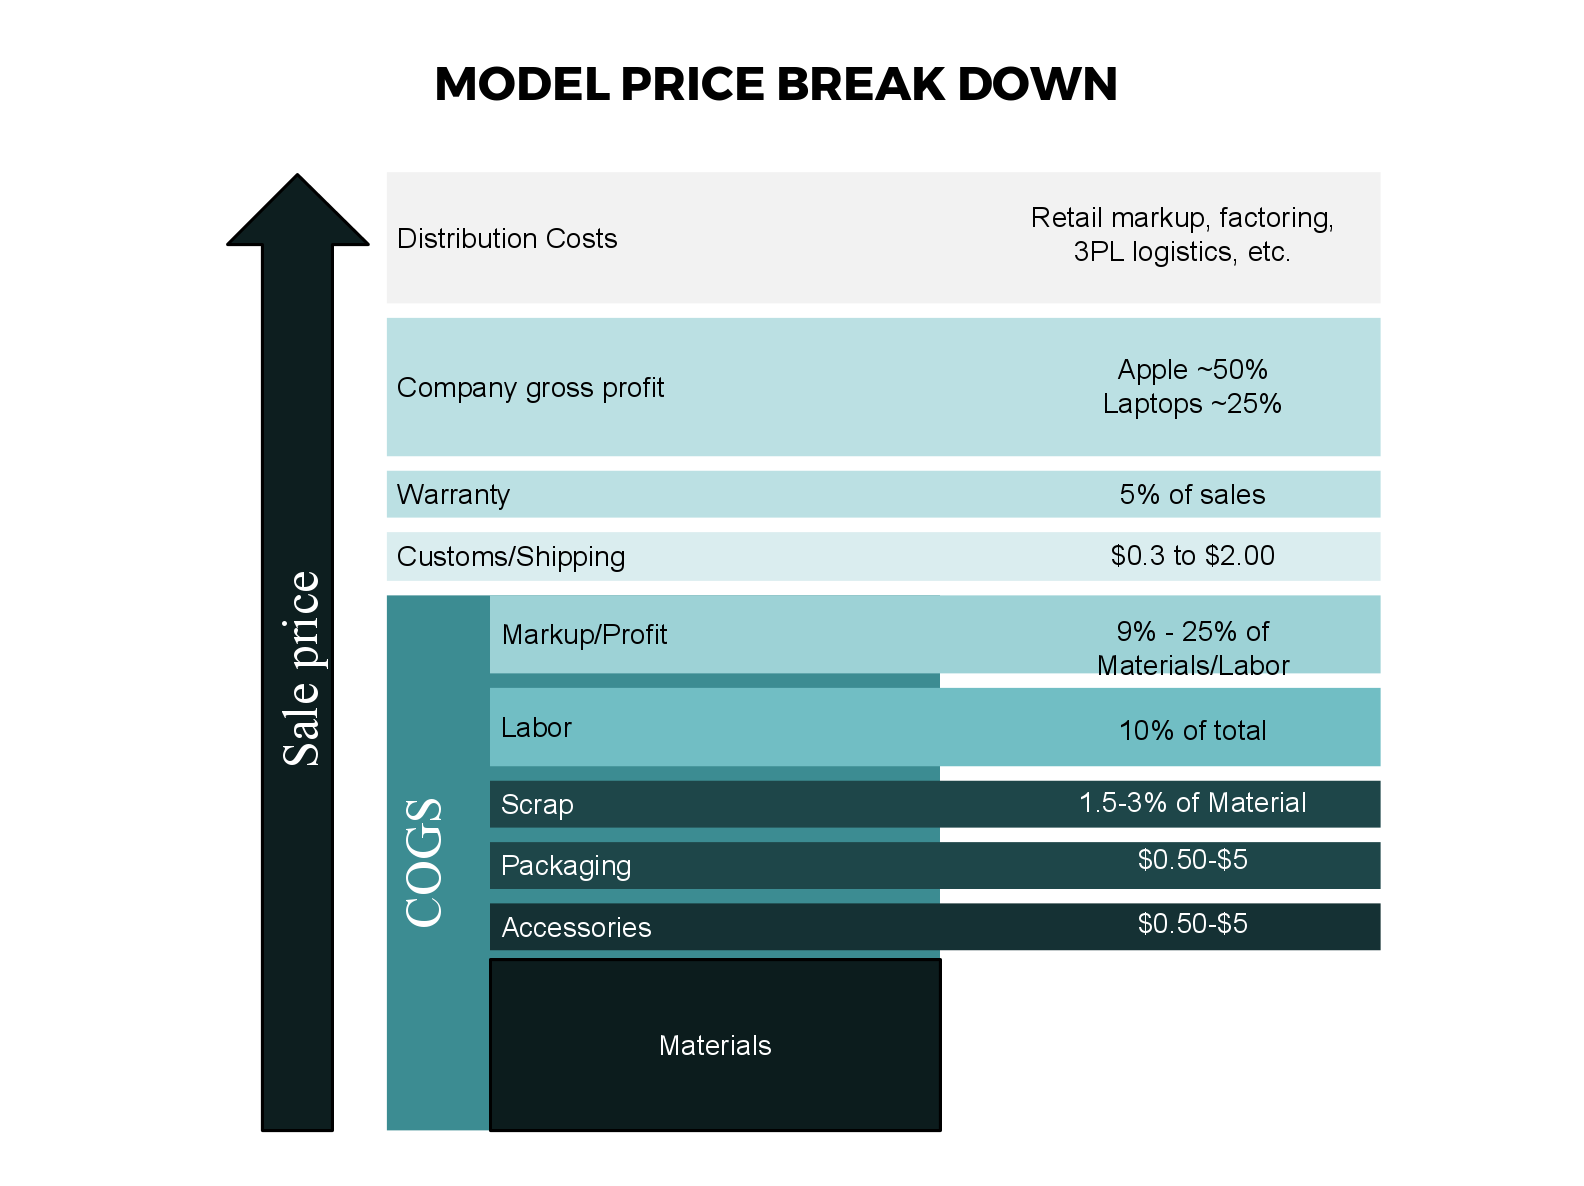 manufacturing cost model price break down chart